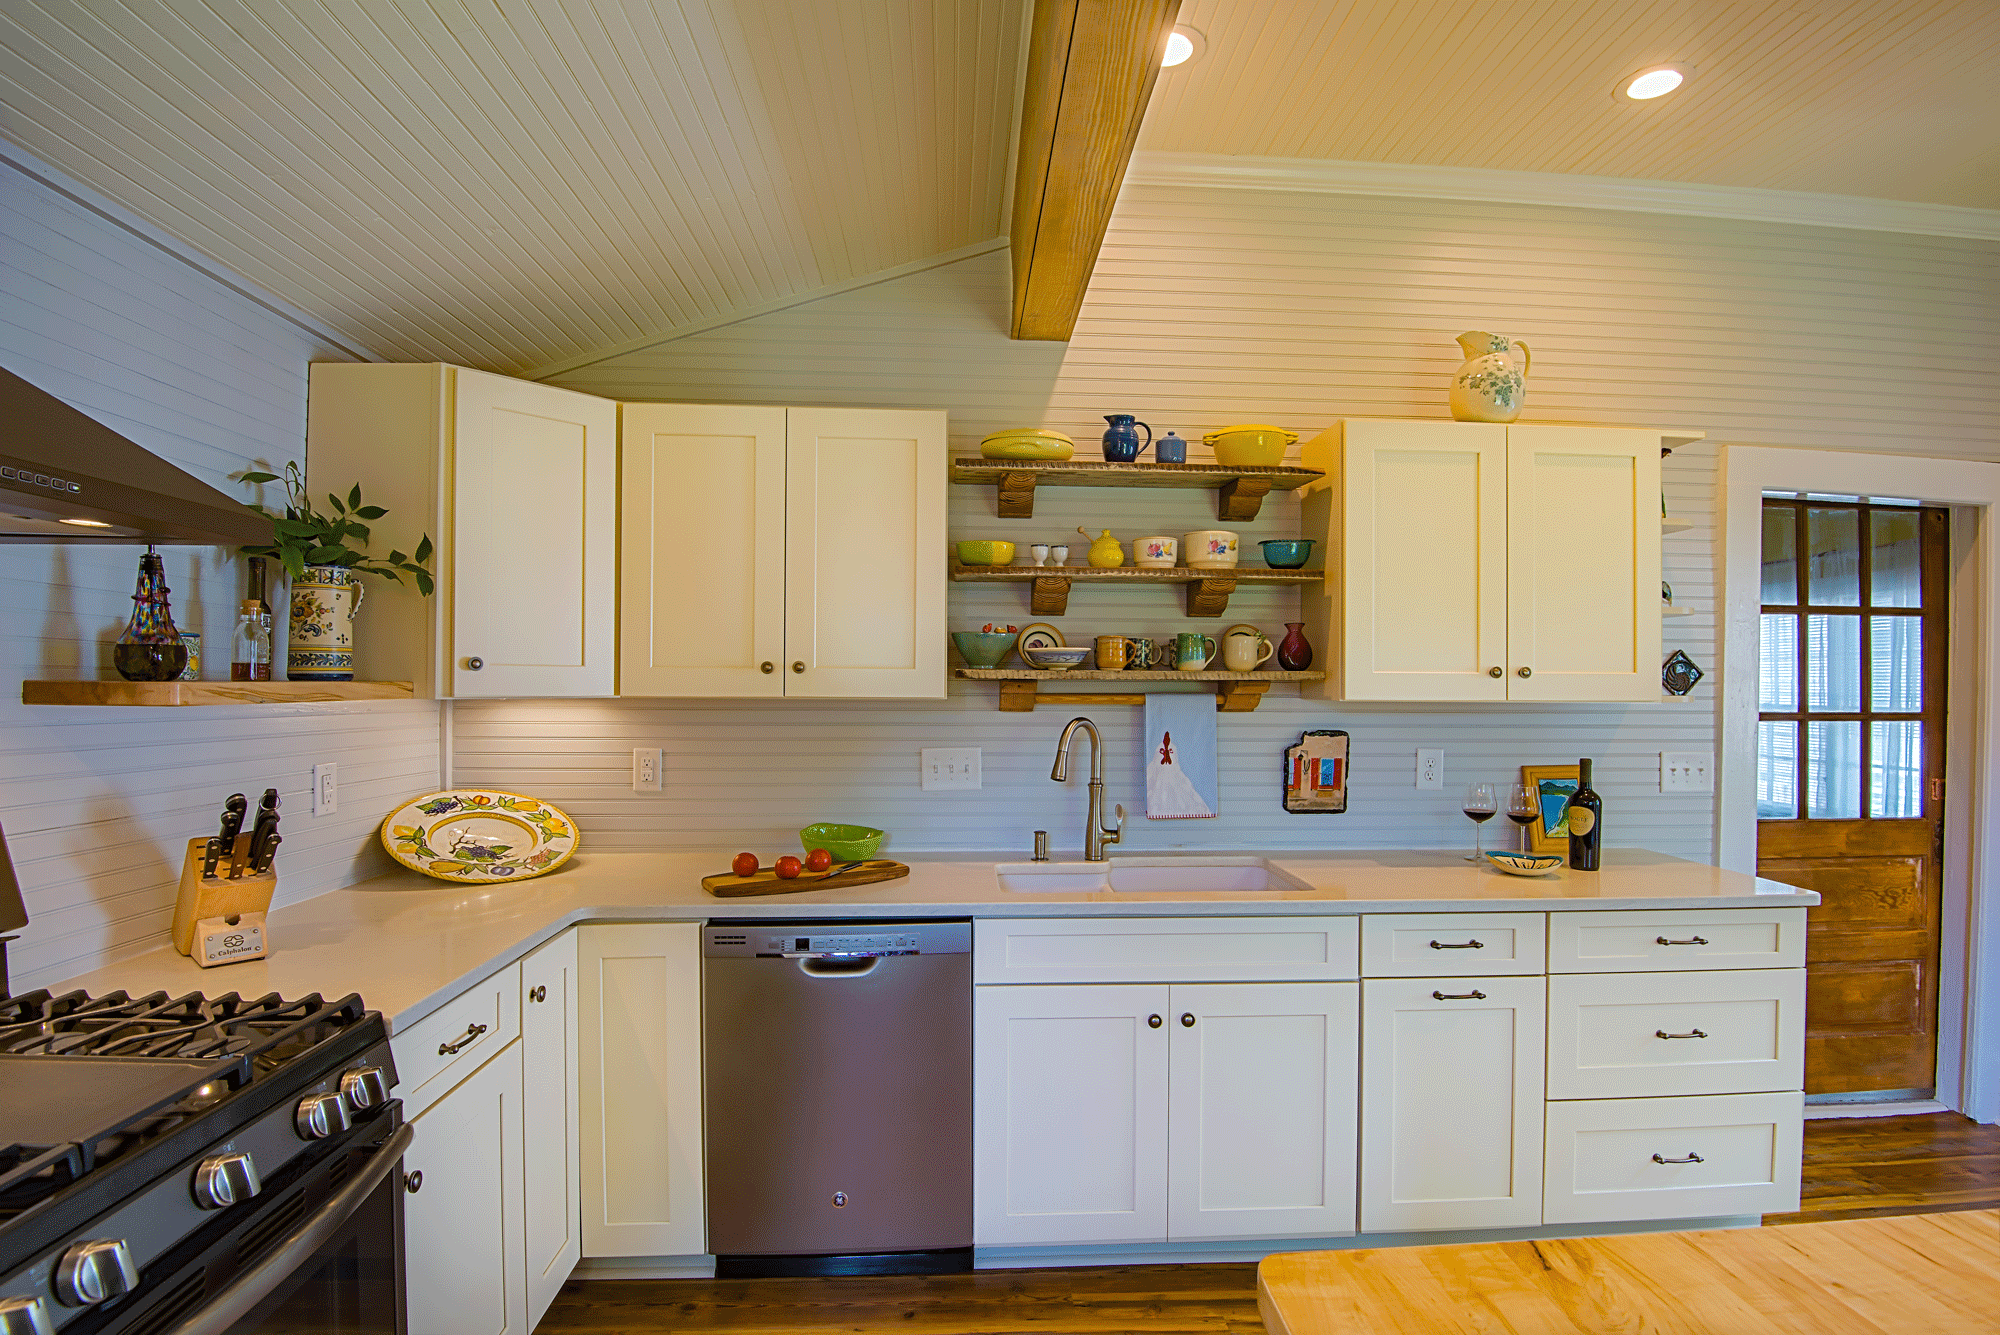 kitchen remodel with pendant lighting, expose beams, cabinets, wall treatment, island, decor